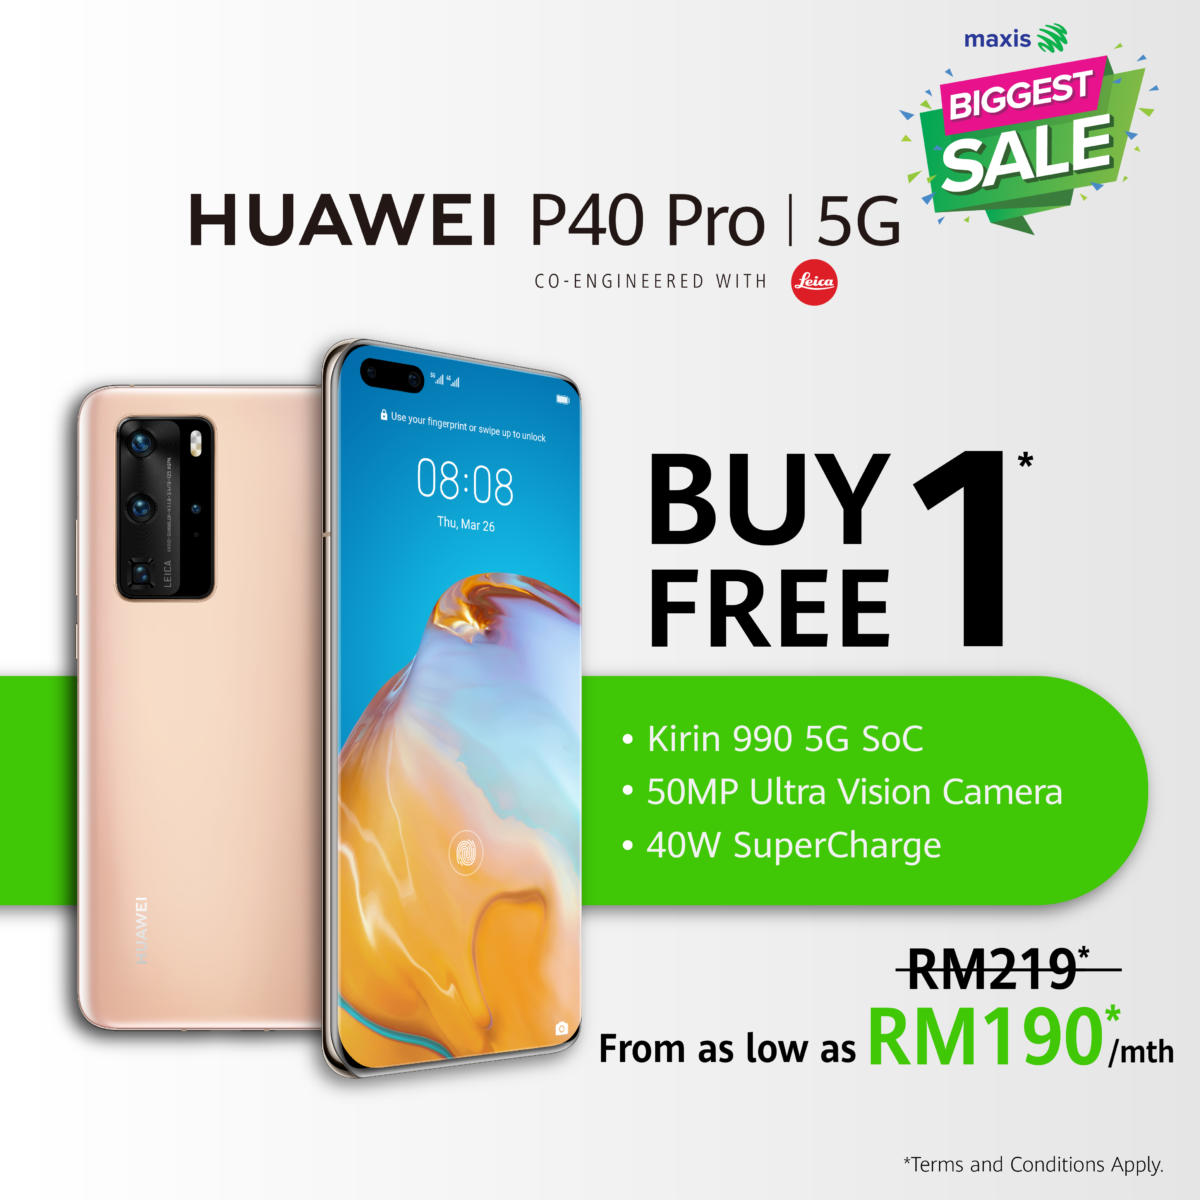 HUAWEI P40 Pro Maxis Biggest Sale